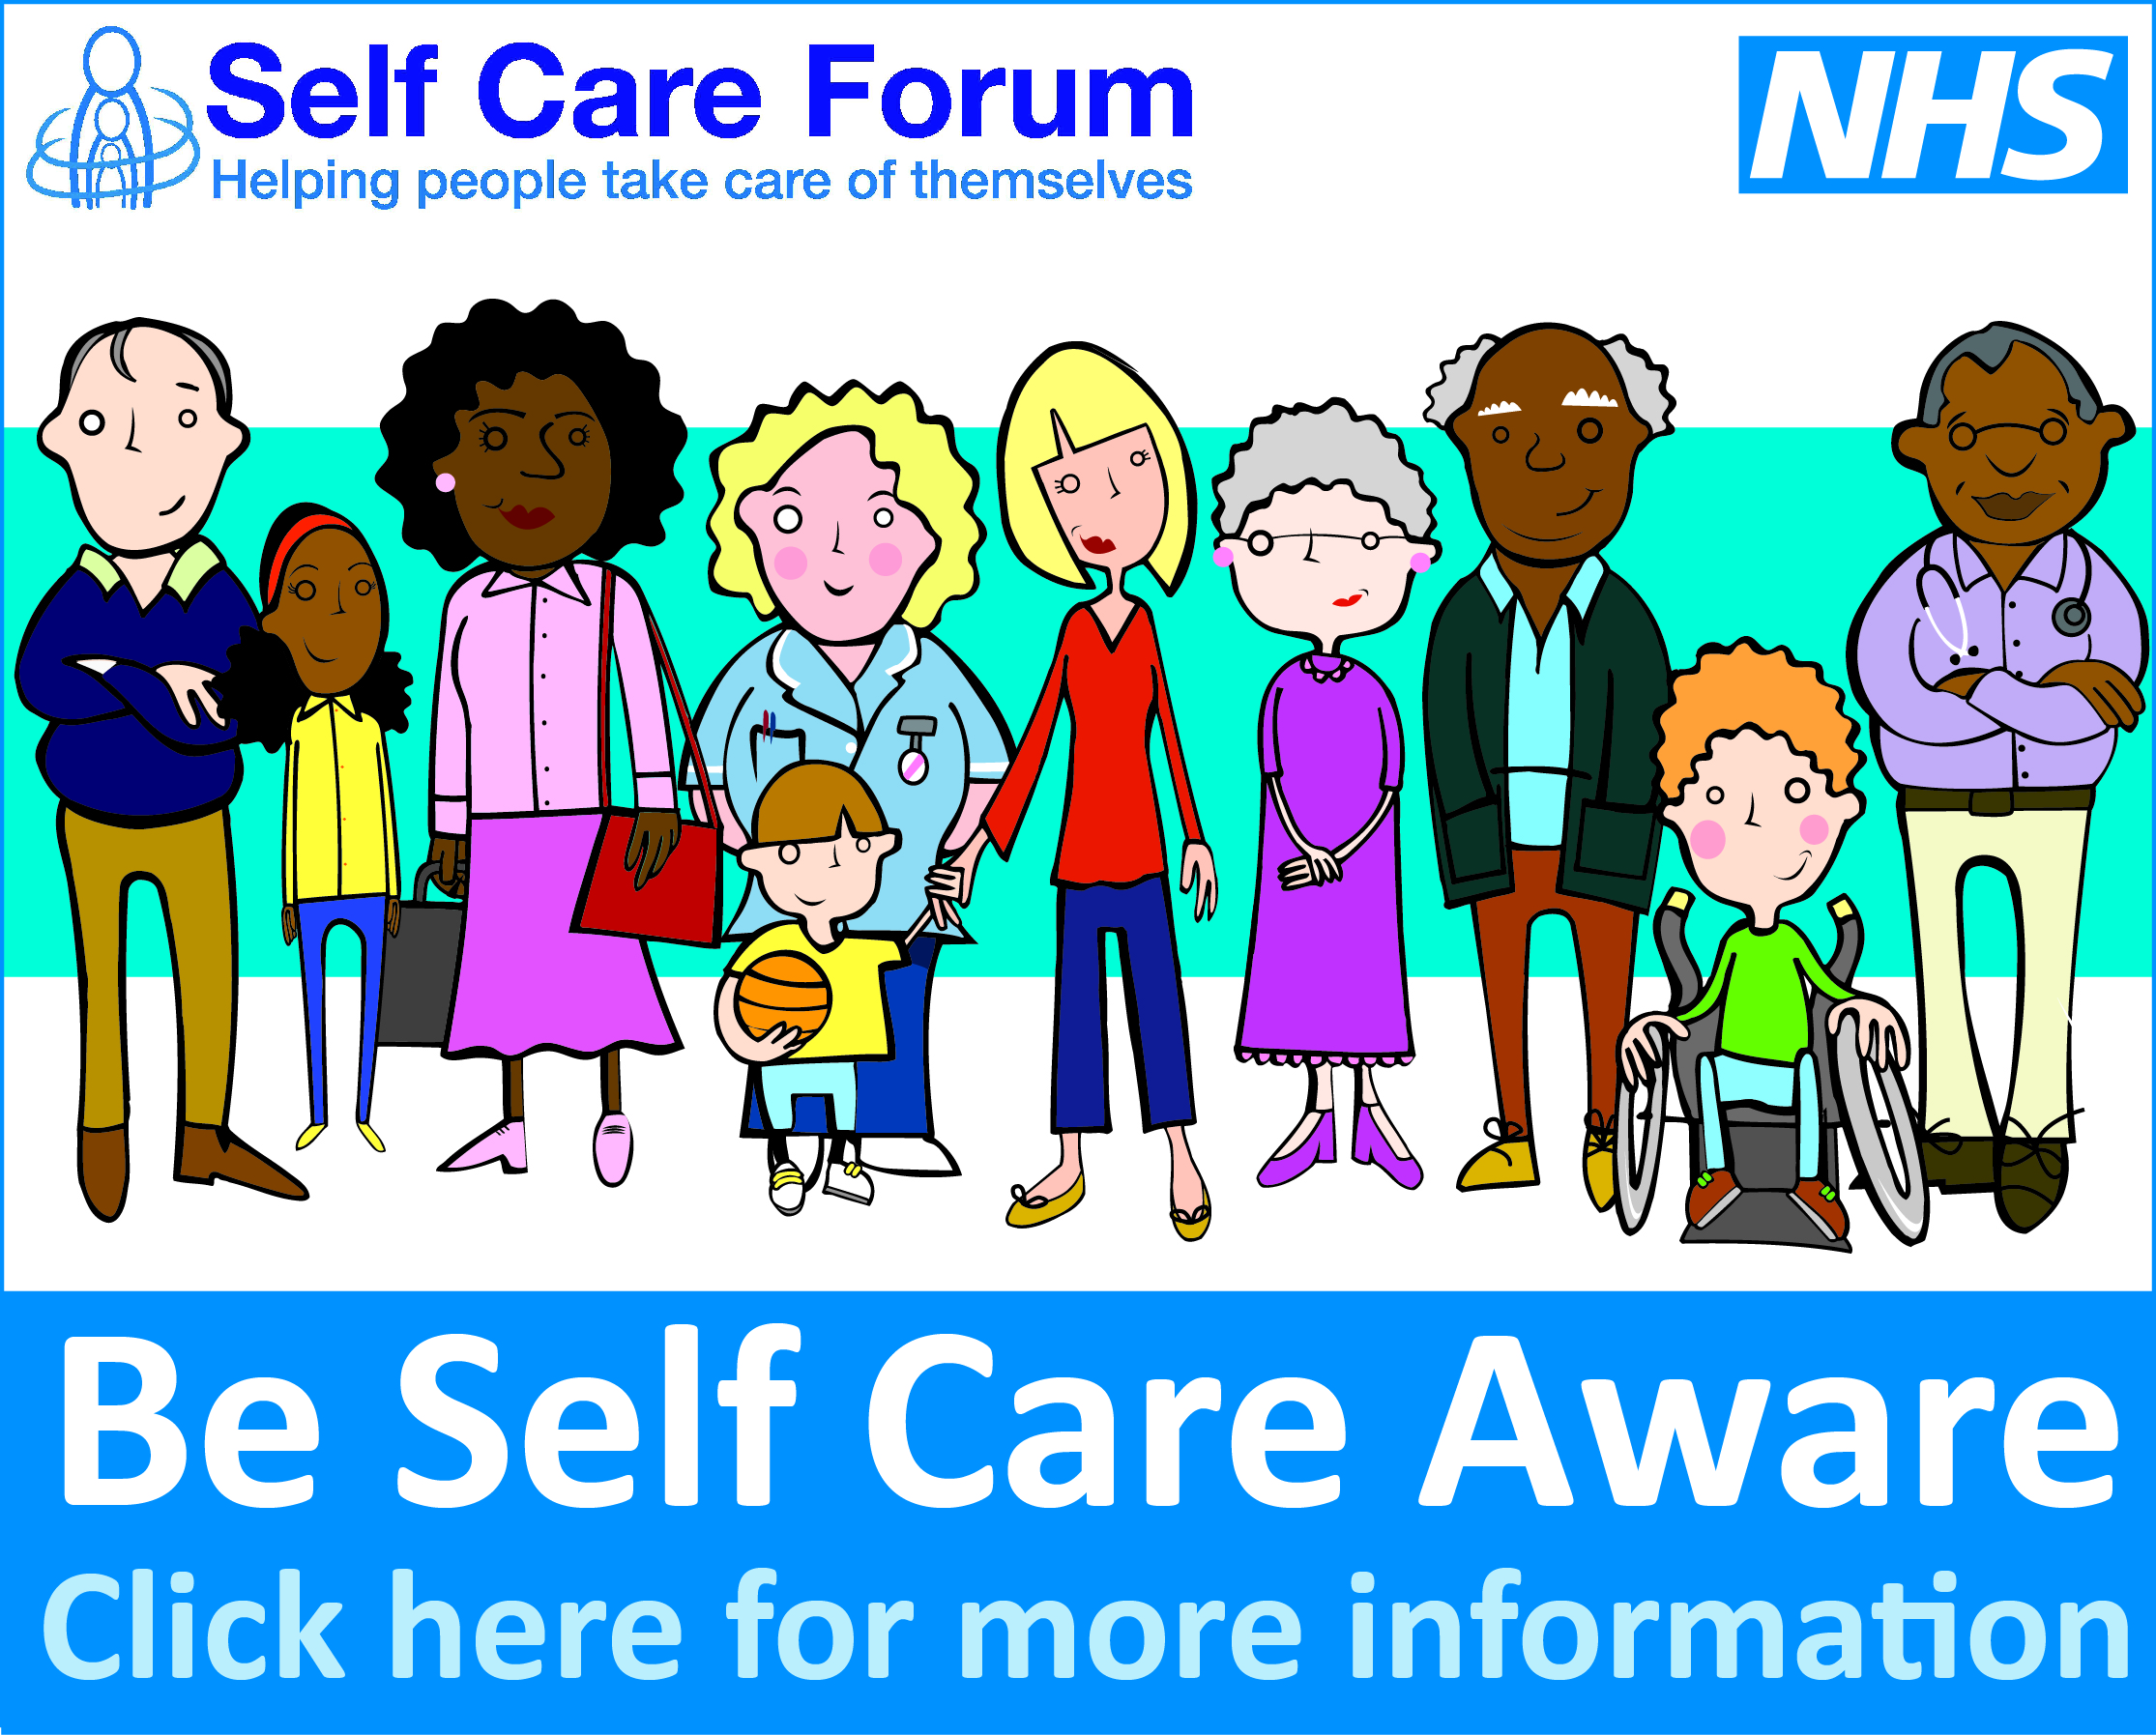 Self Care Forum - Helping people take care of themselves - NHS - Be Self Care Aware - Click here for more information